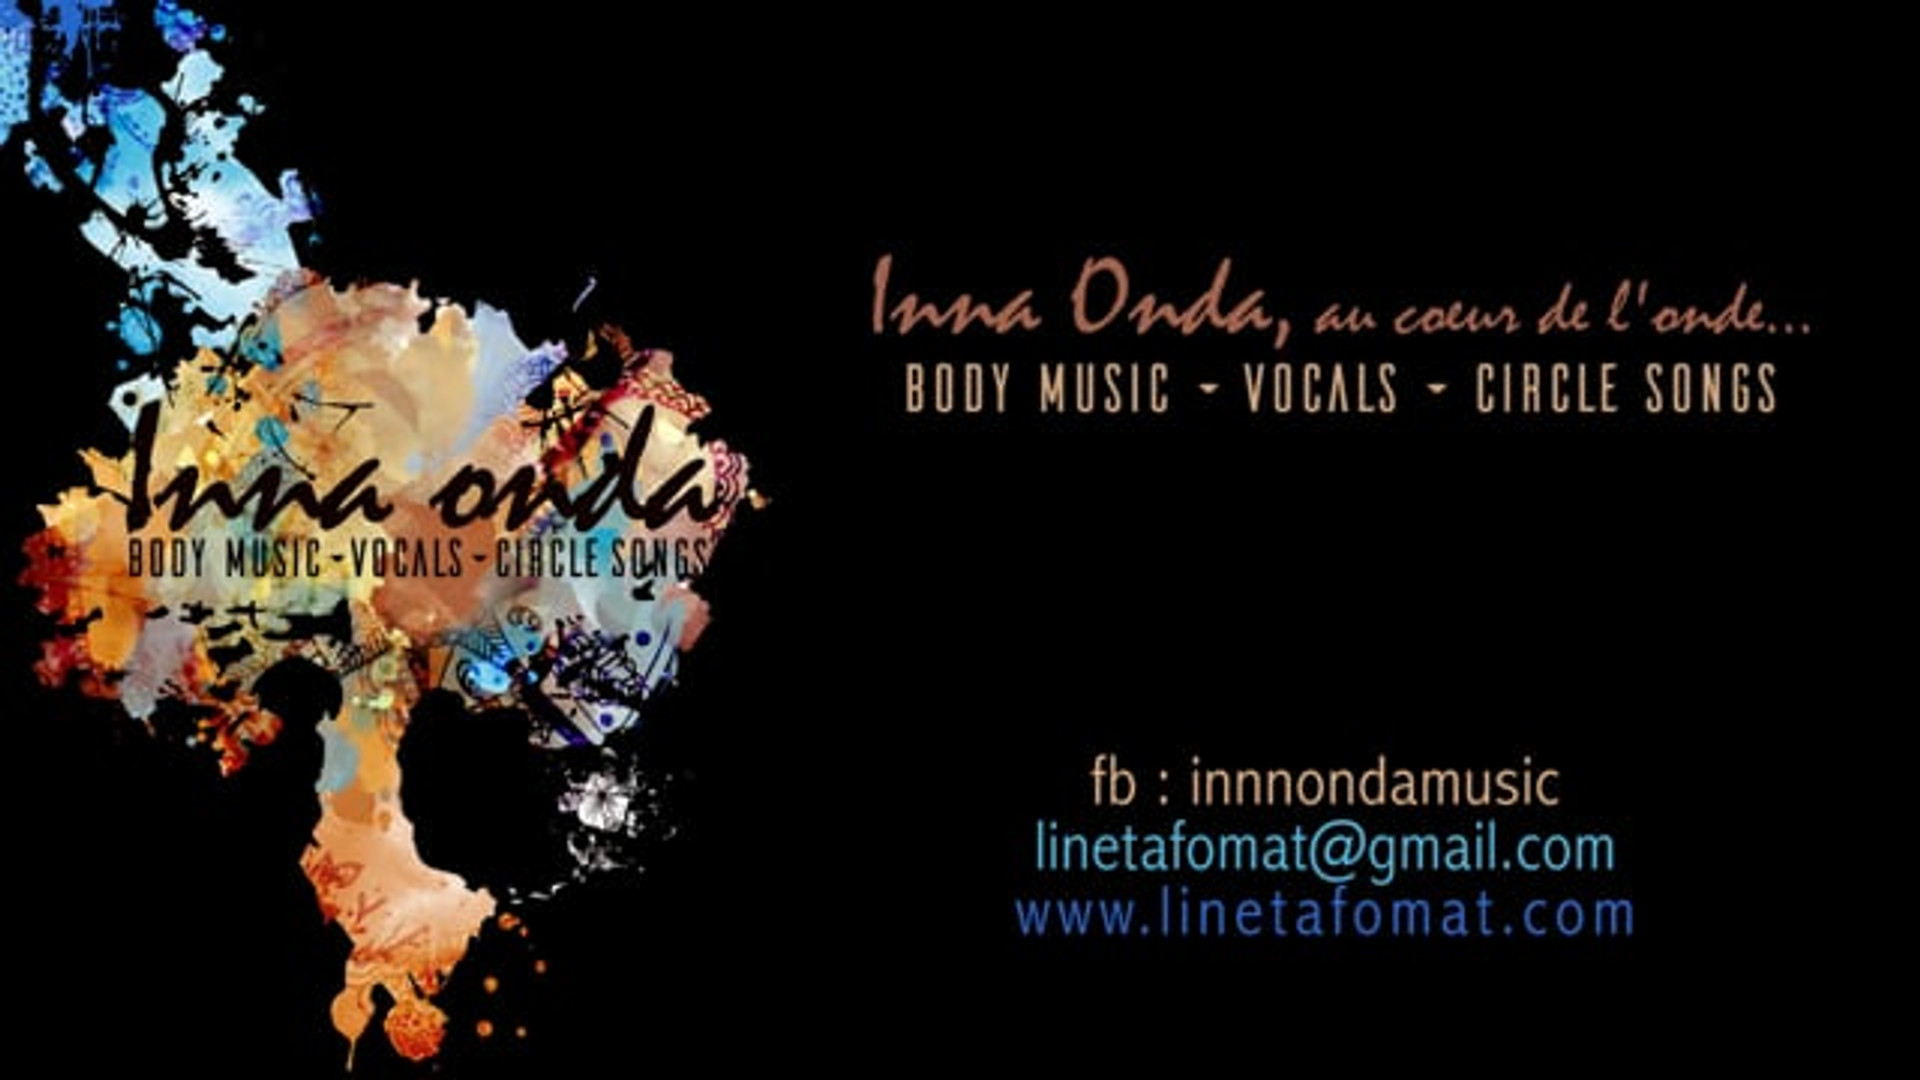 Circlesongs et body music all over the world